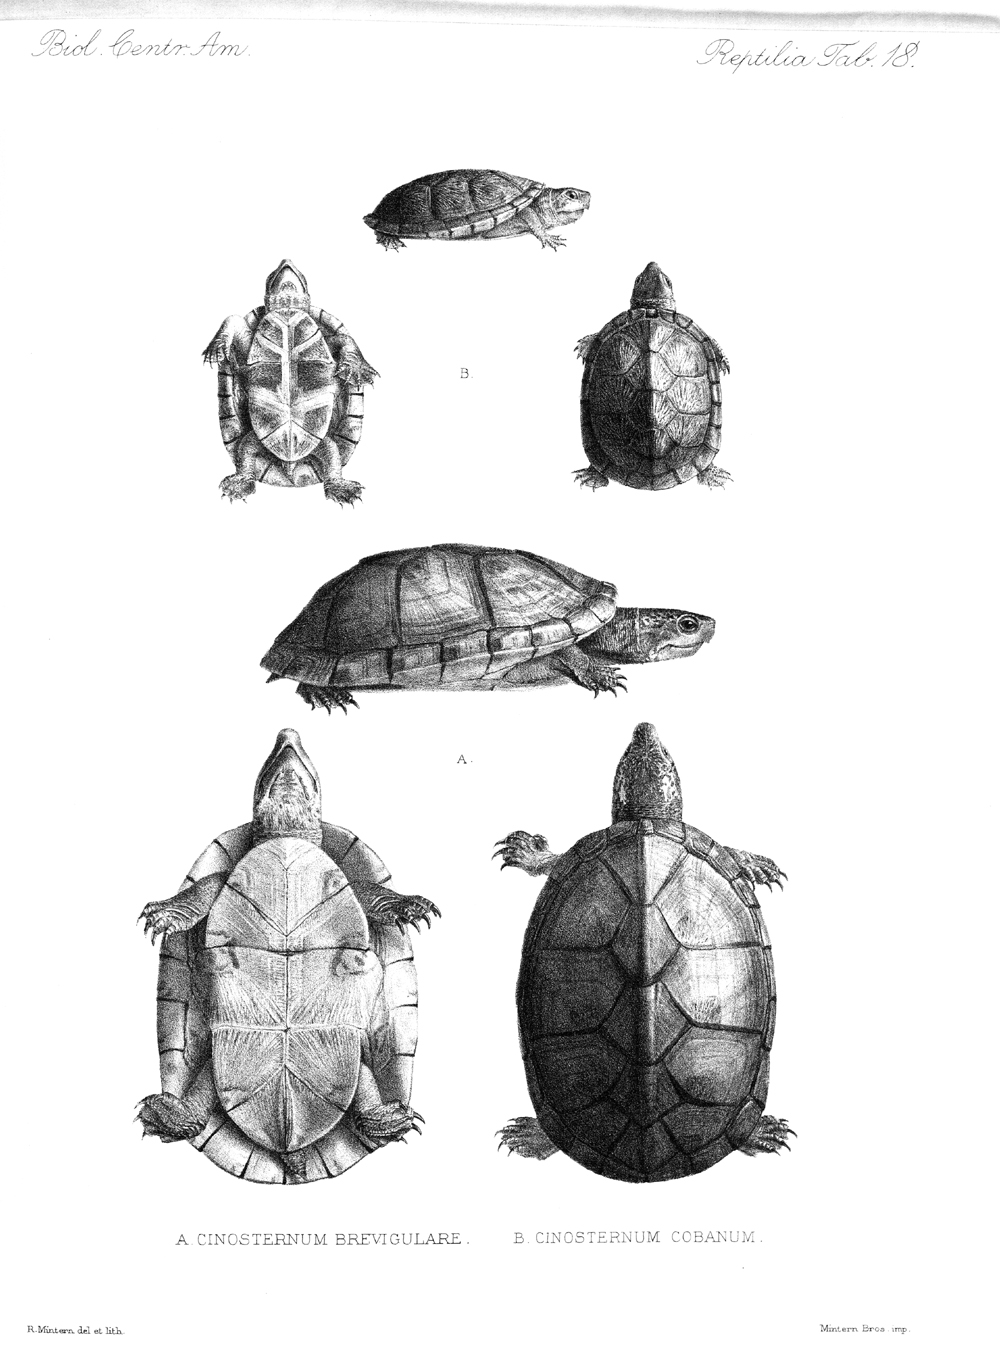 Turtles,  Image number:bca_04_00_00_368